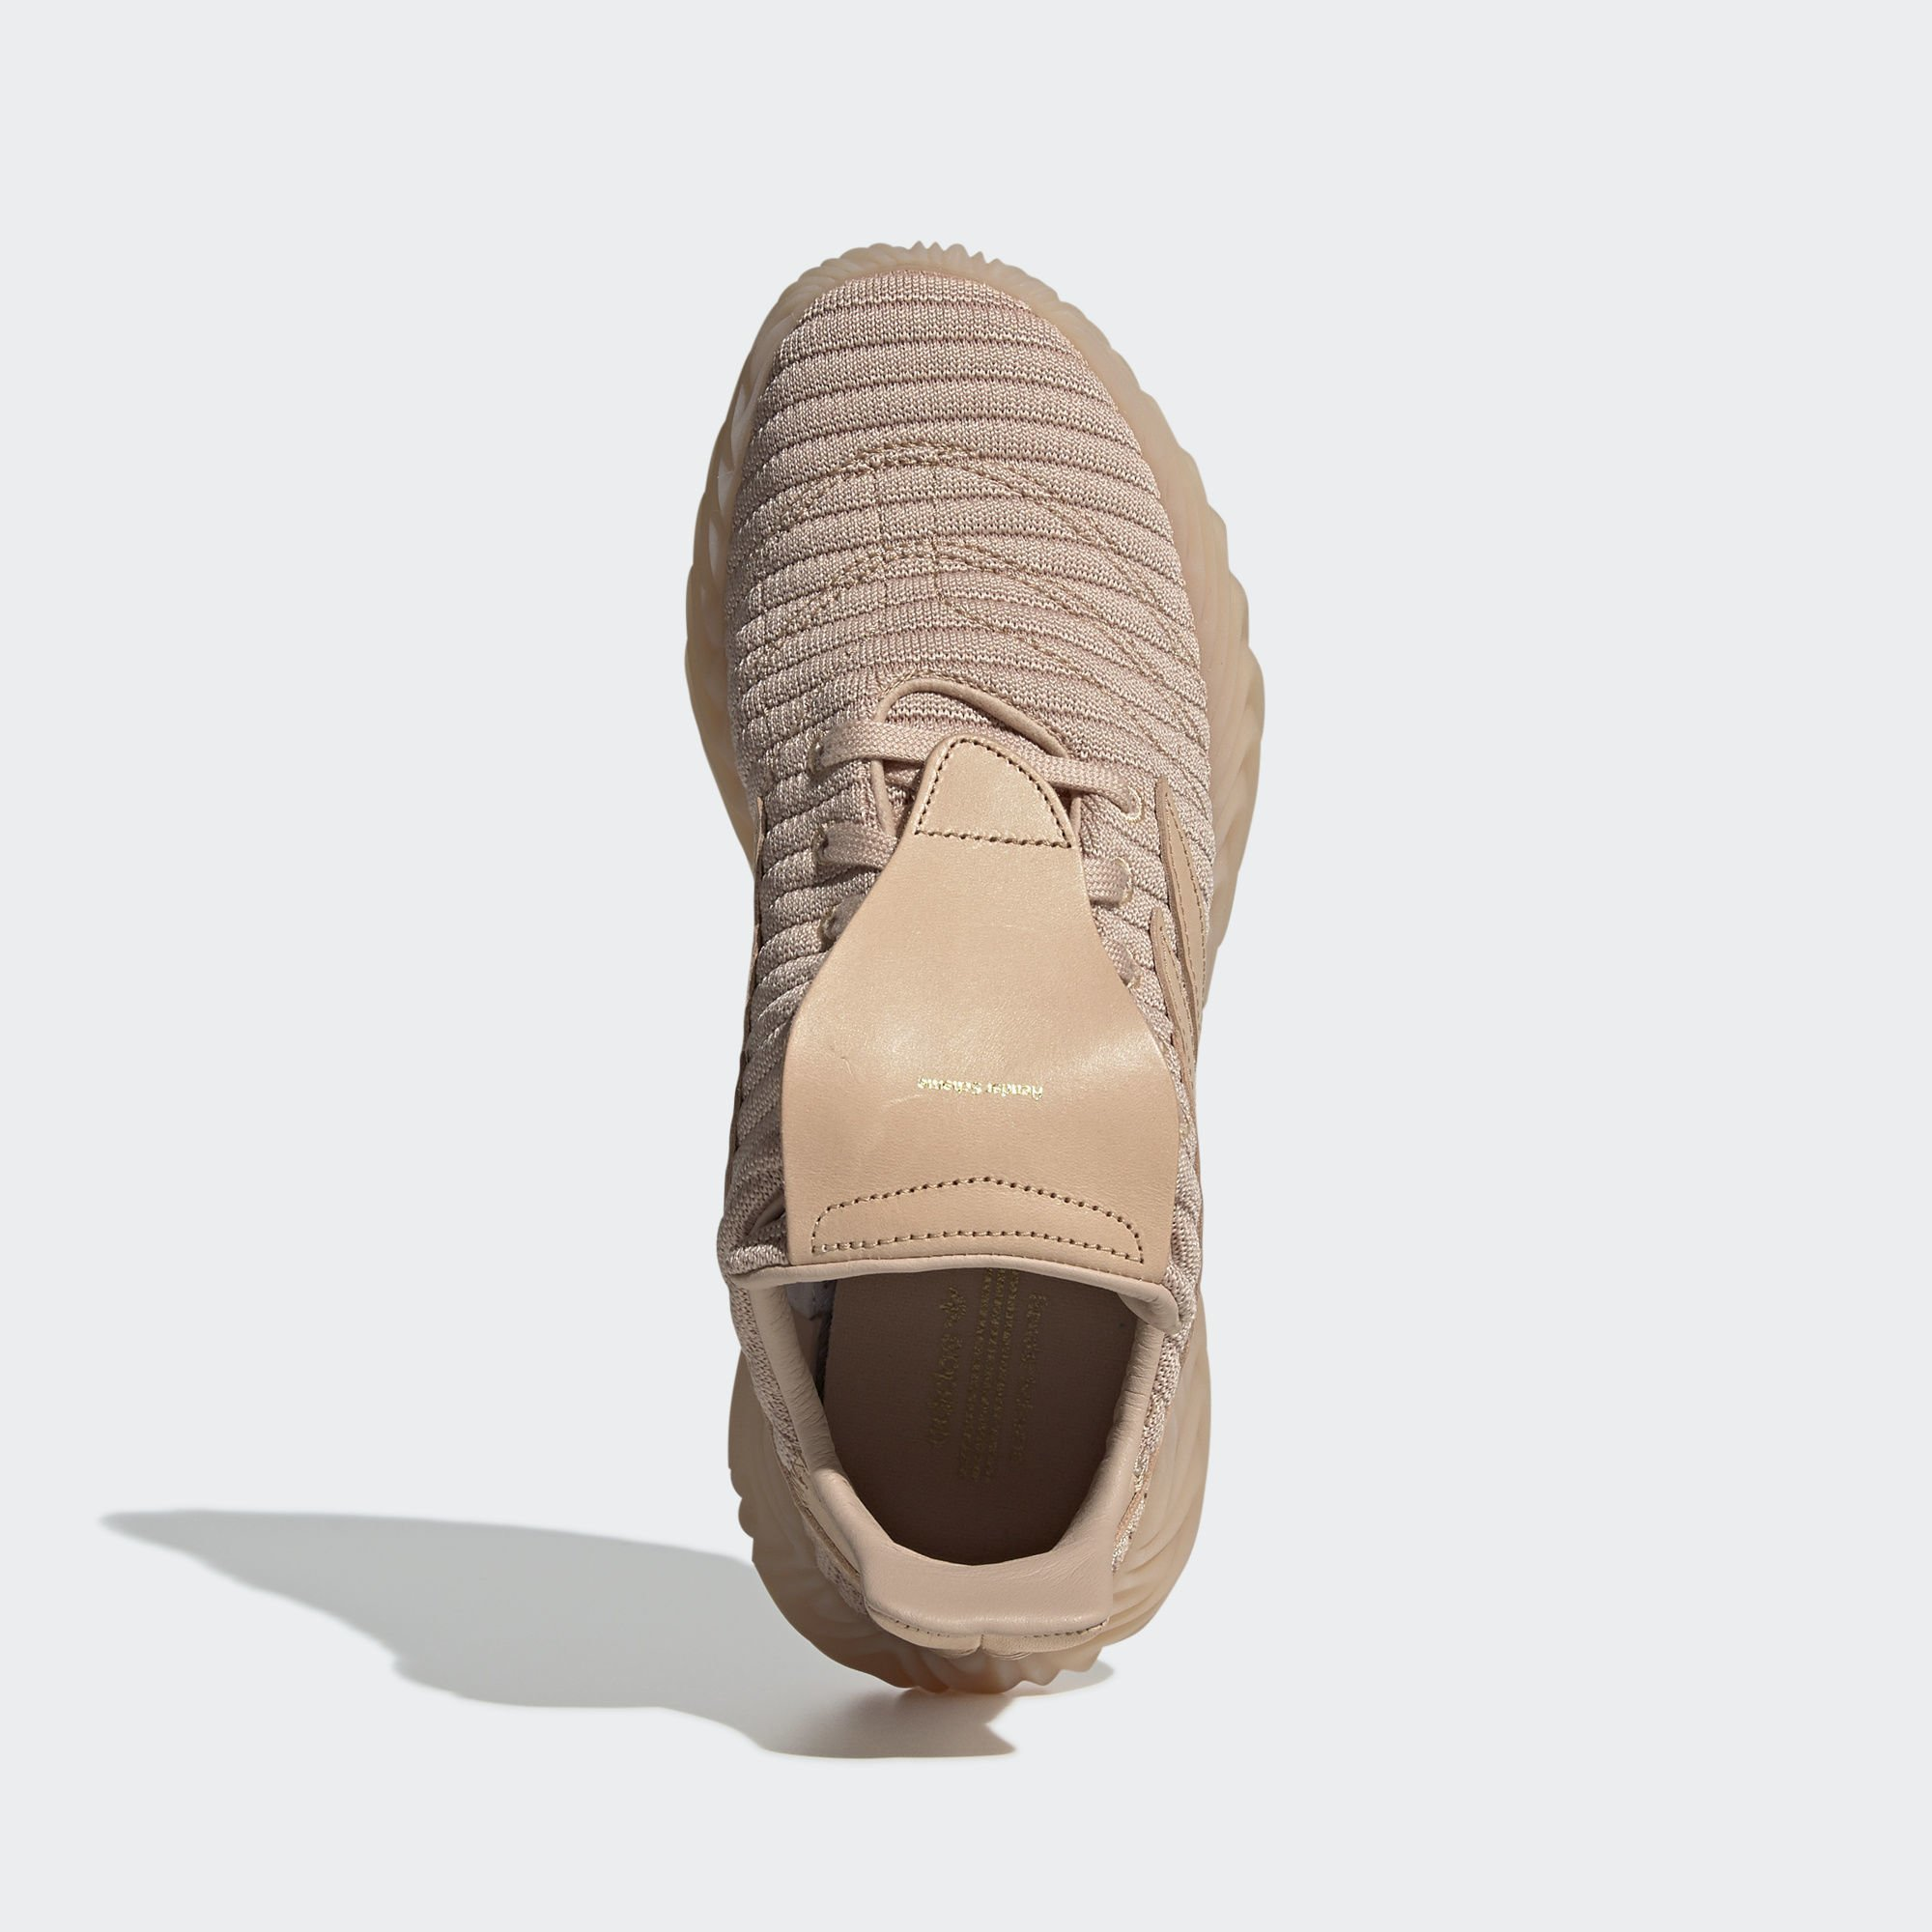 Adidas HS Sobakov Supplier Colour / Supplier Colour / Supplier Colour (EE5441)